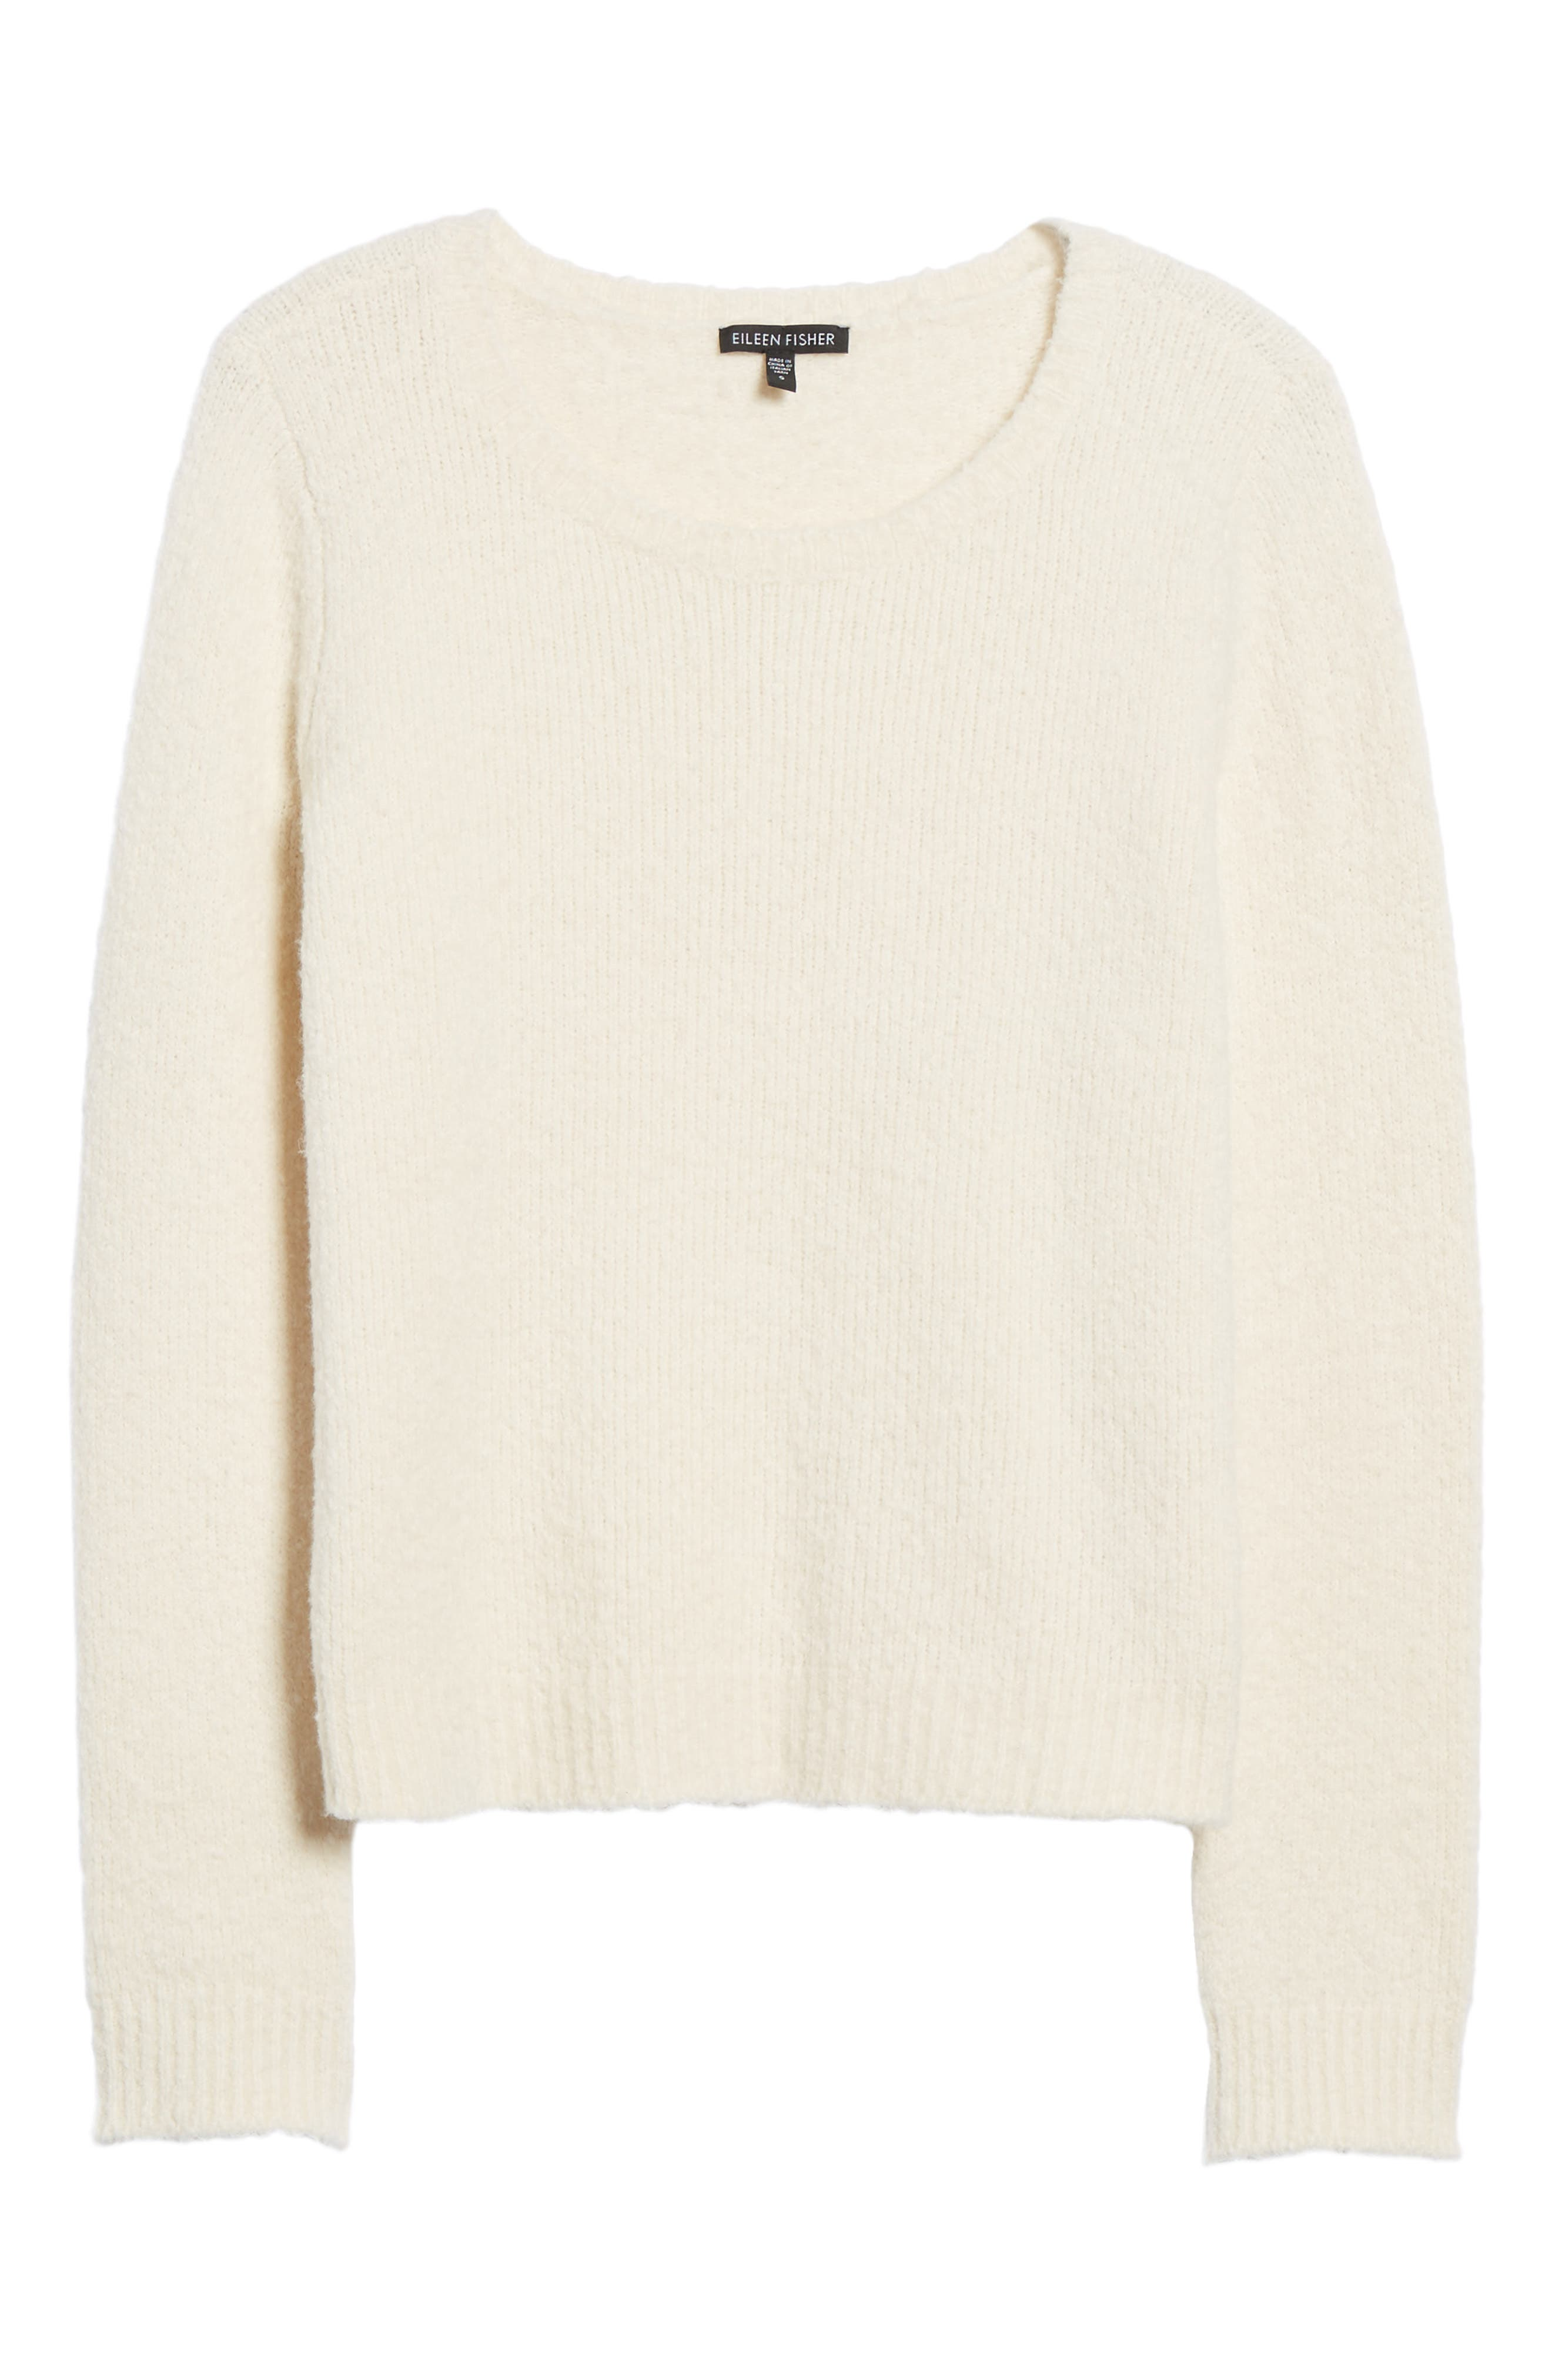 Organic Cotton Blend Sweater,                             Alternate thumbnail 6, color,                             Soft White